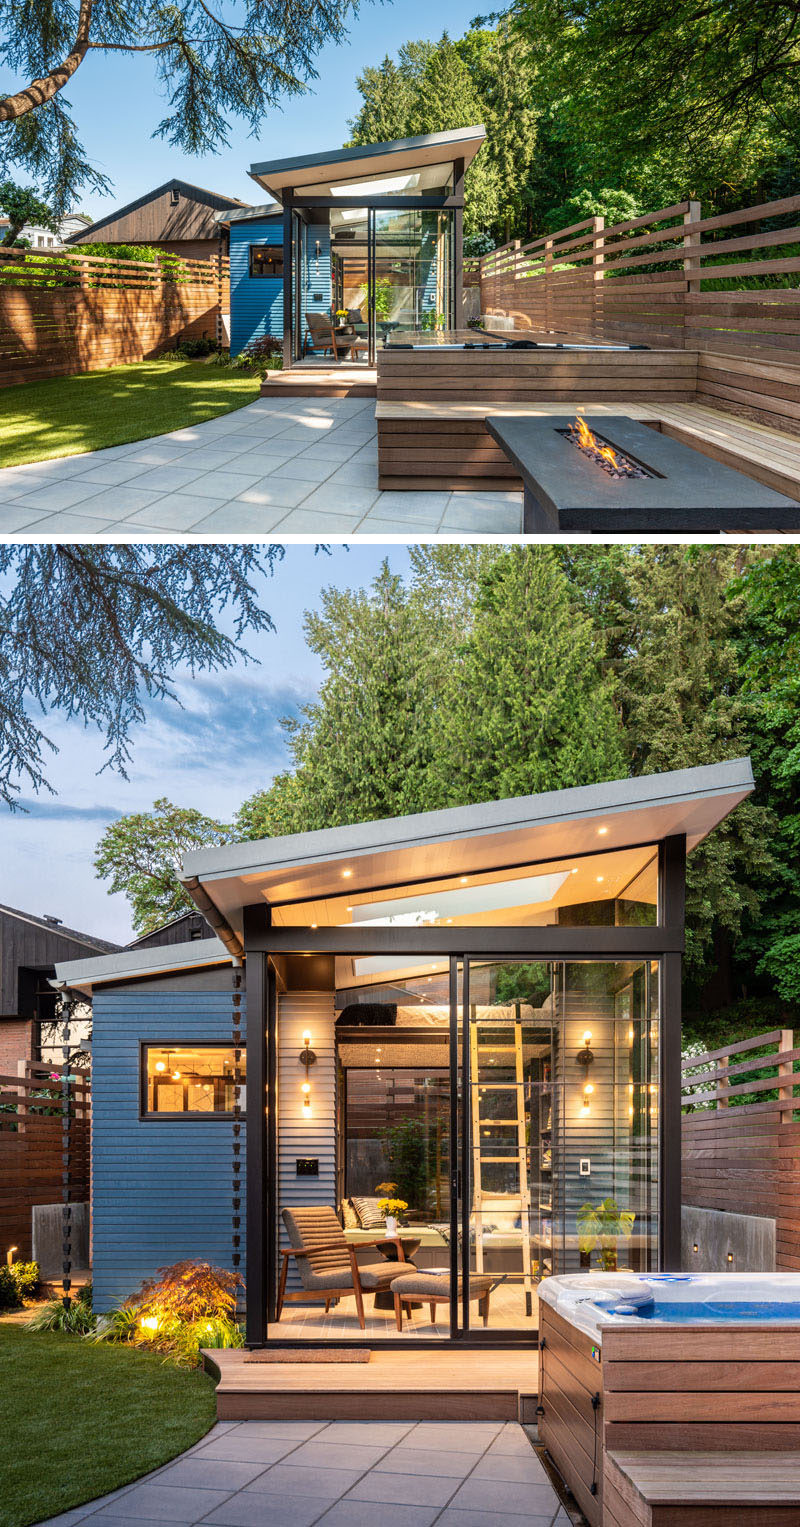 Architecture and design studio Board & Vellum, have created a backyard reading retreat that's surrounded by outdoor seating, a firepit, a hot tub, and a new backyard shed. #BackyardStudio #BackyardRetreat #Architecture